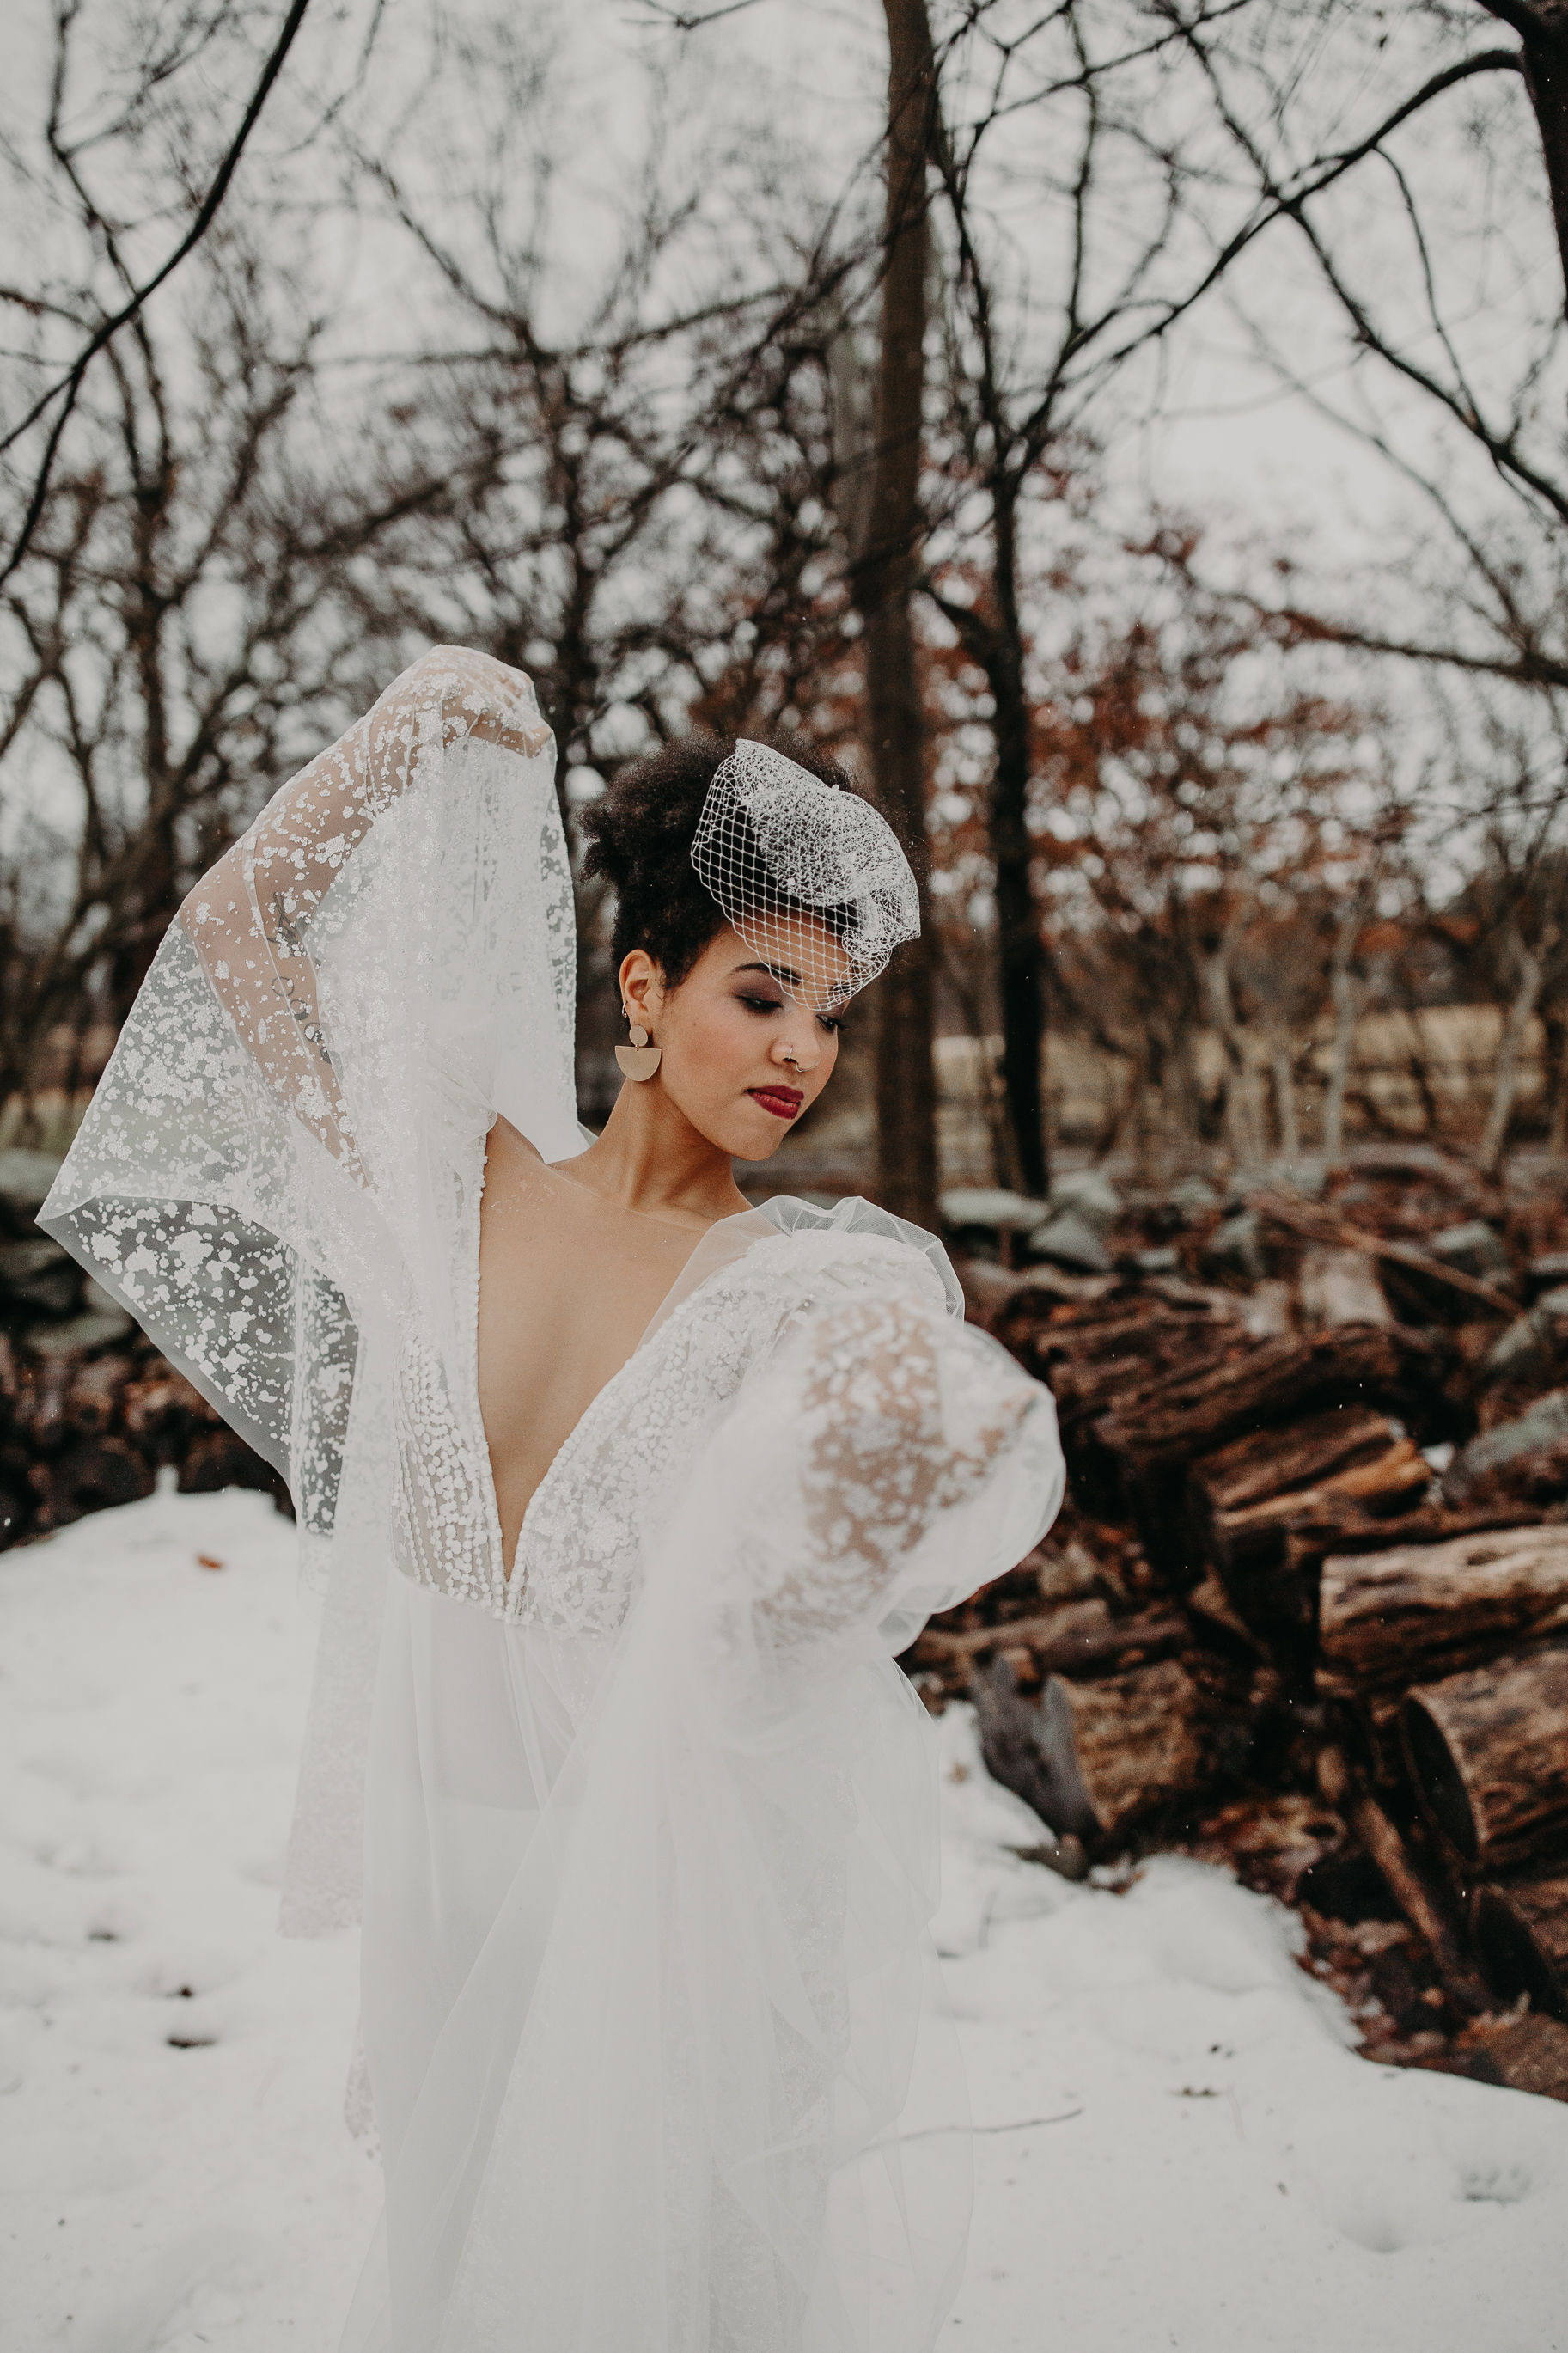 Dancing at the B&B winter fashionable elopement in Hudson, New York - Pearl Weddings & Events